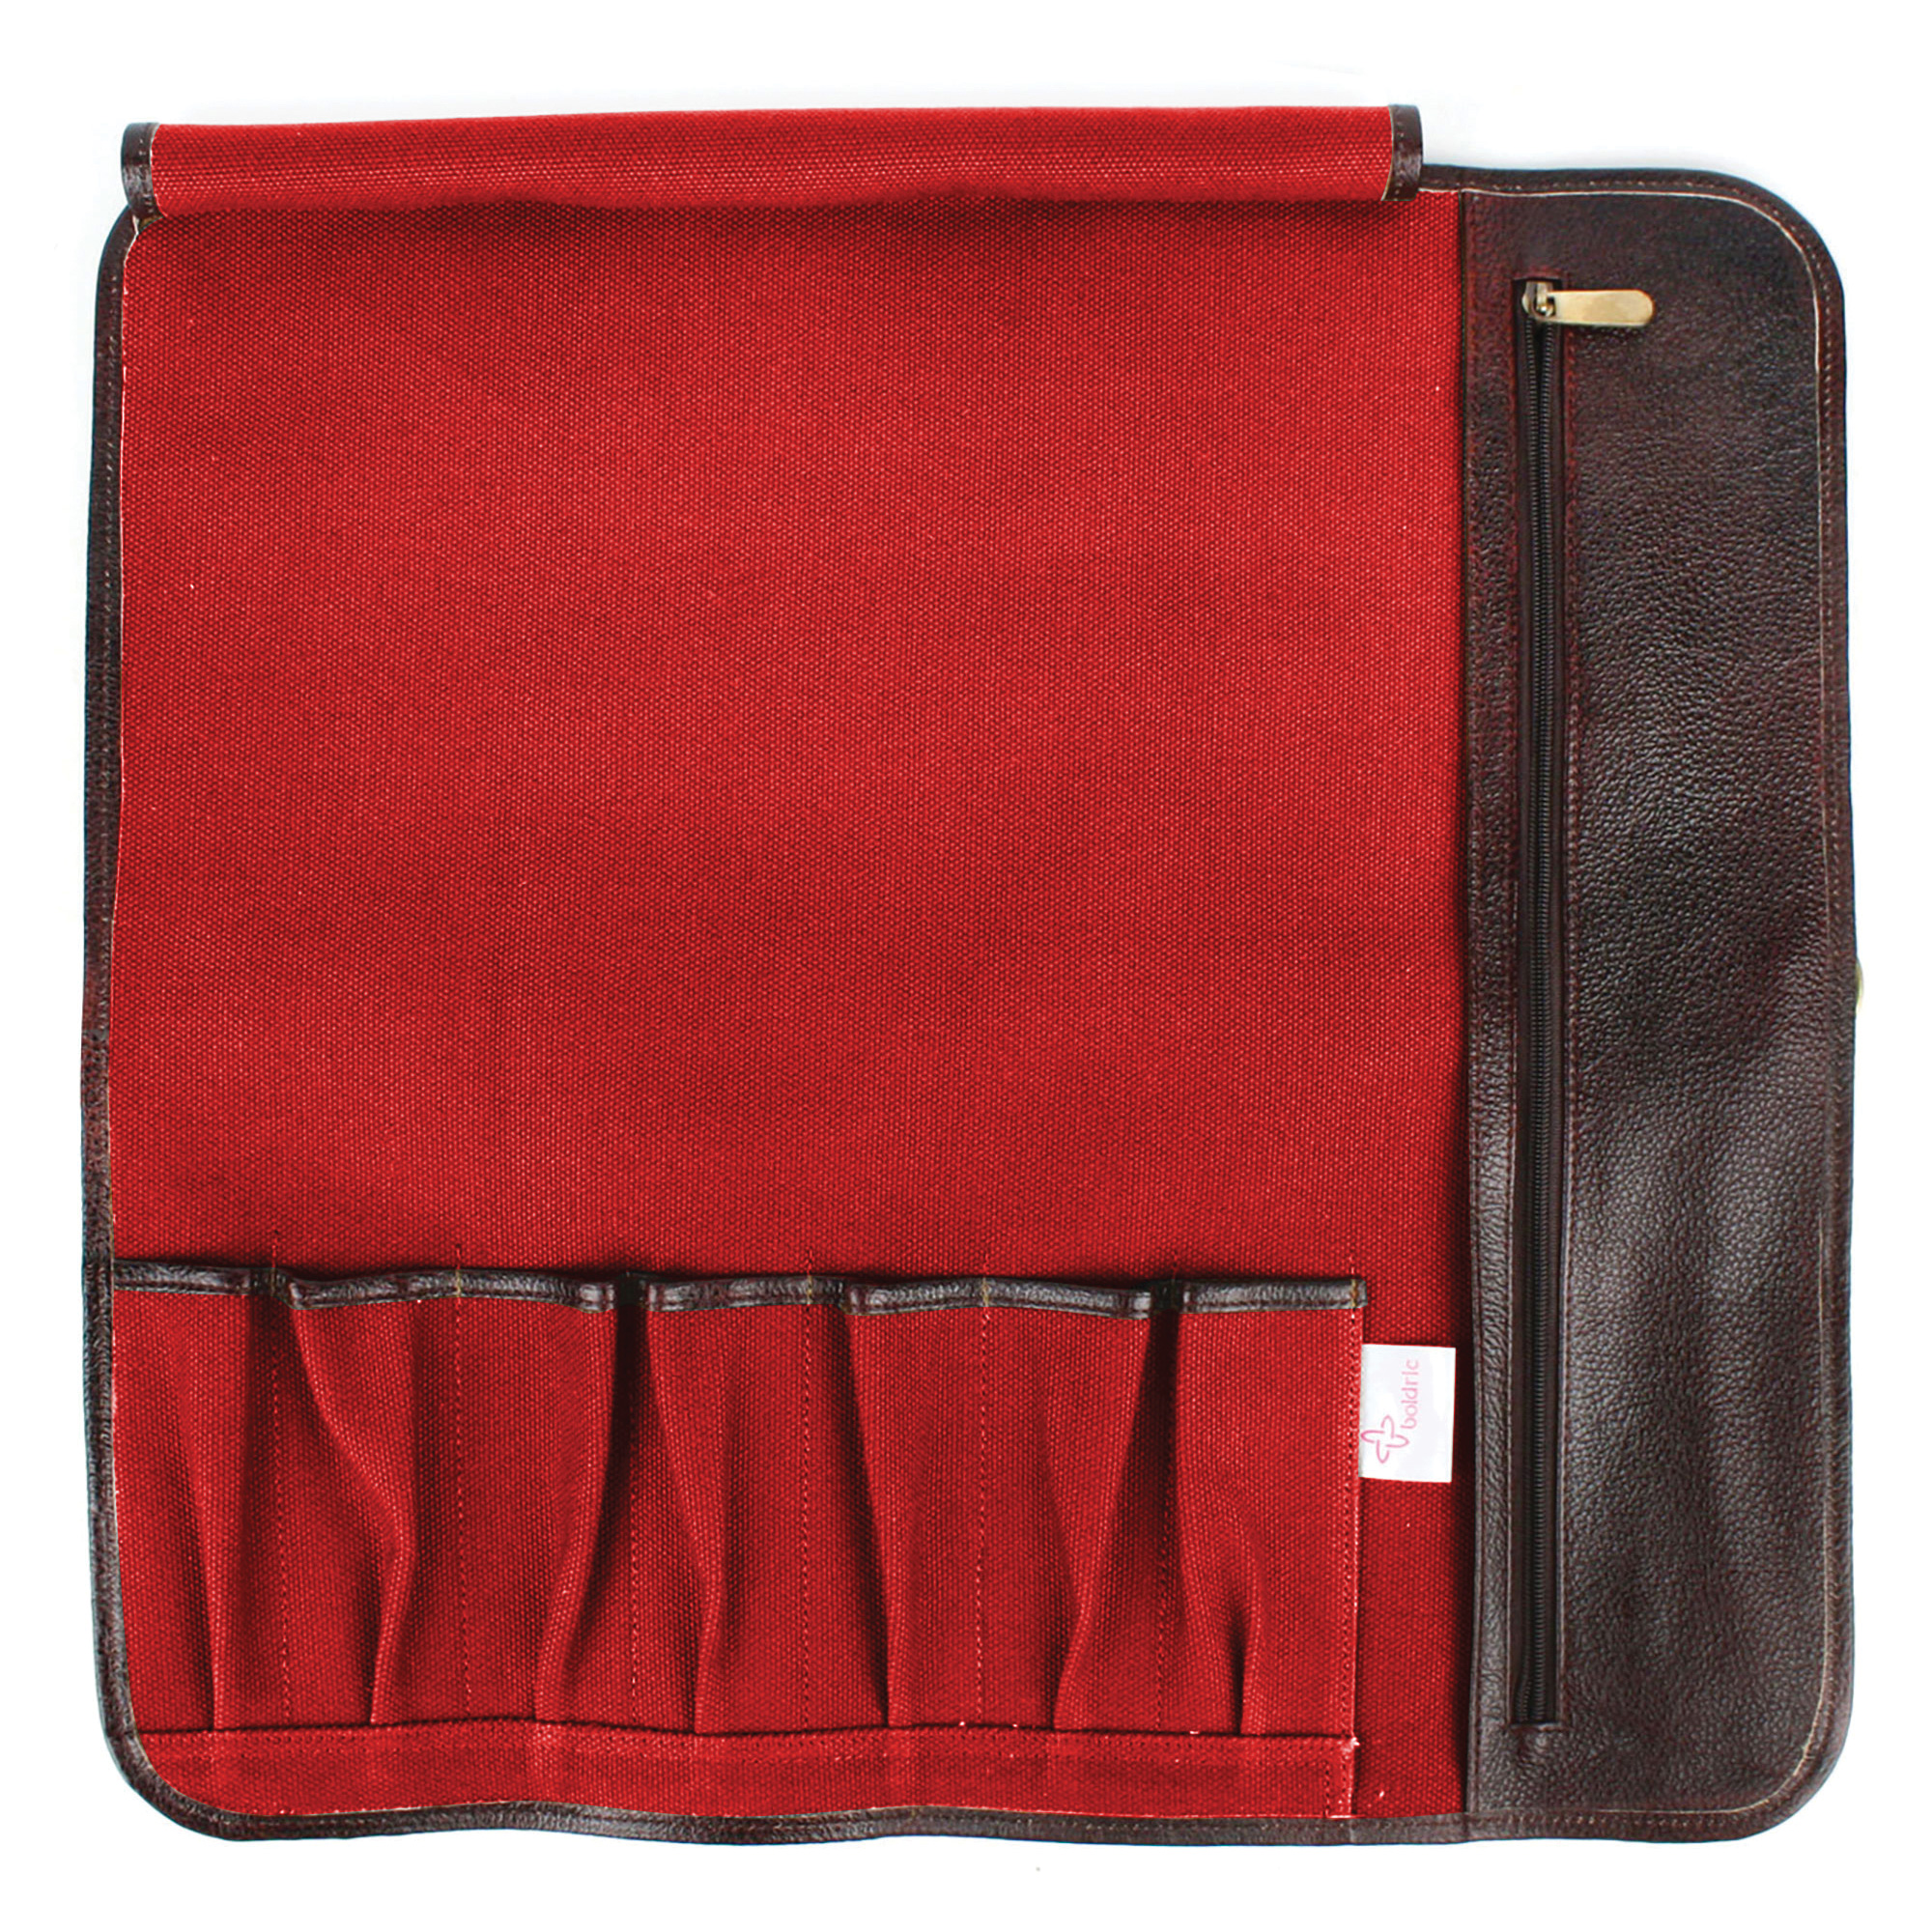 Boldric Canvas Hook Tie Knife Roll 7 Pocket Red